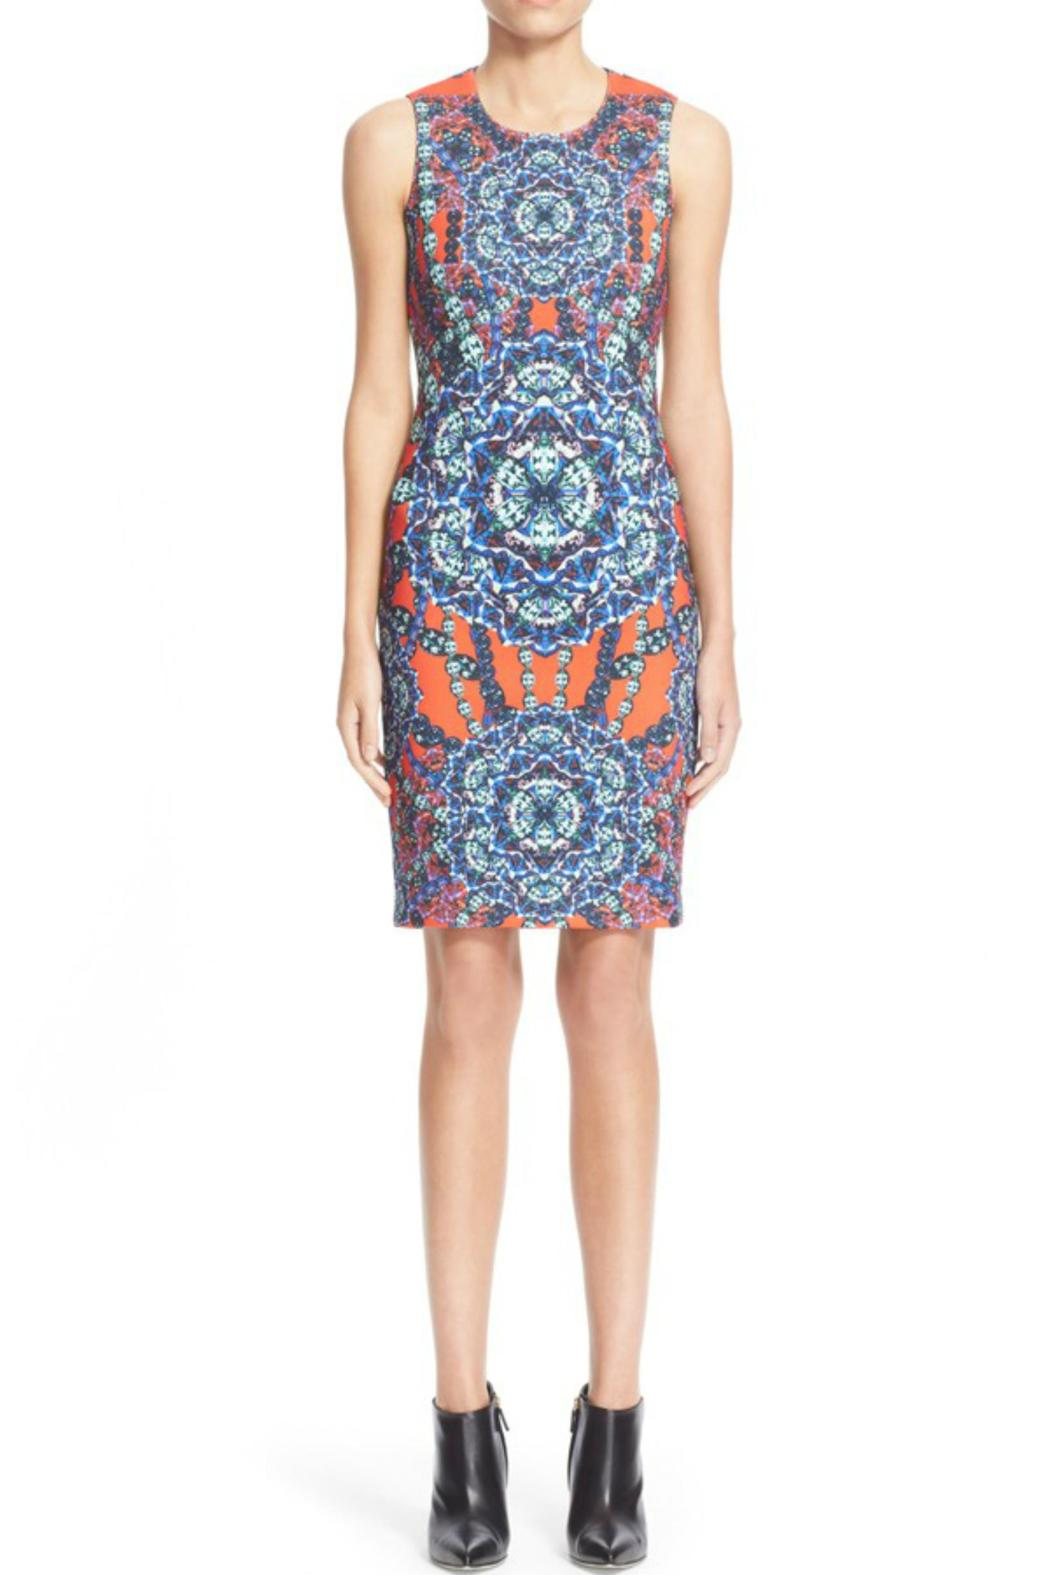 c2b24530c9 Hunter Bell New York Shannon Jewel Dress from Back Bay by Max ...